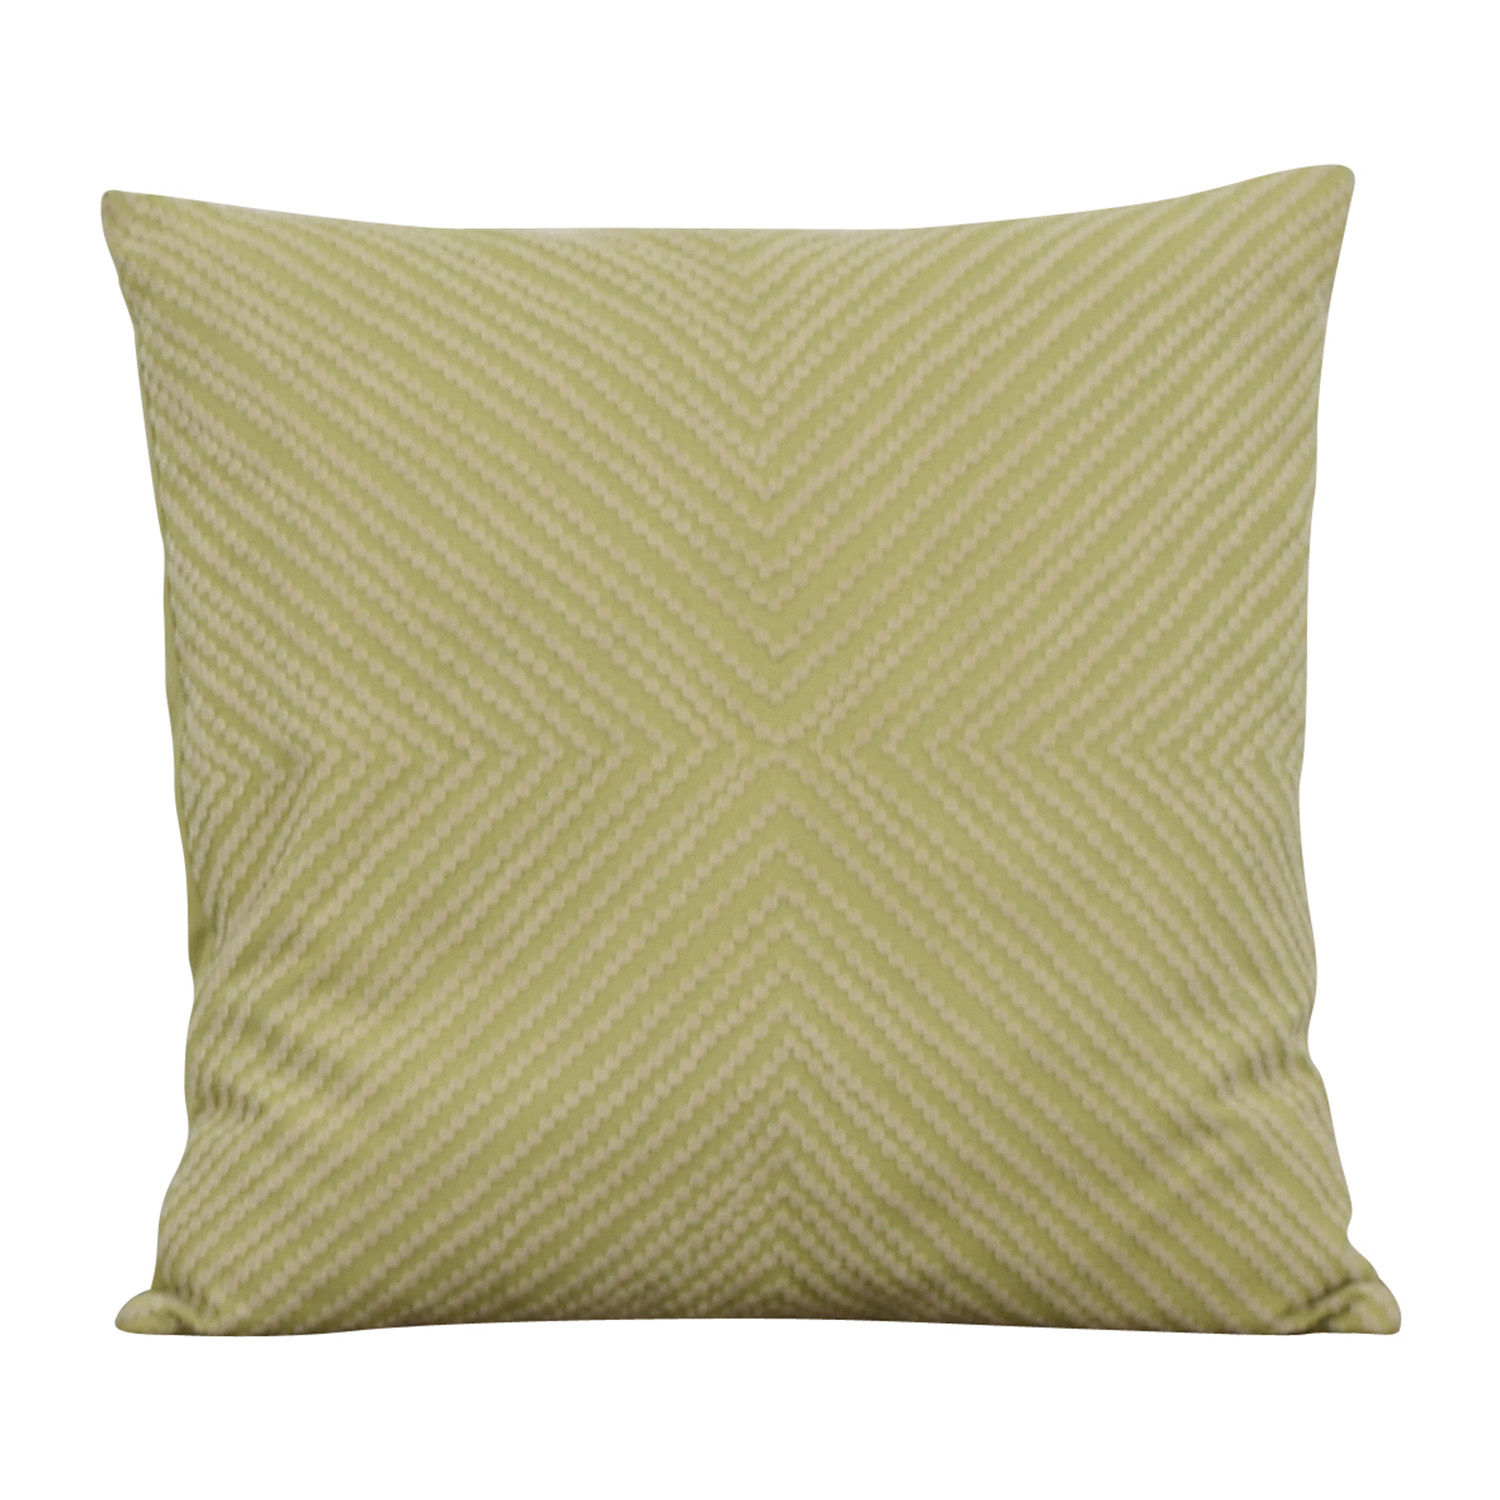 Lime Green and Cream Decorative Toss Pillow